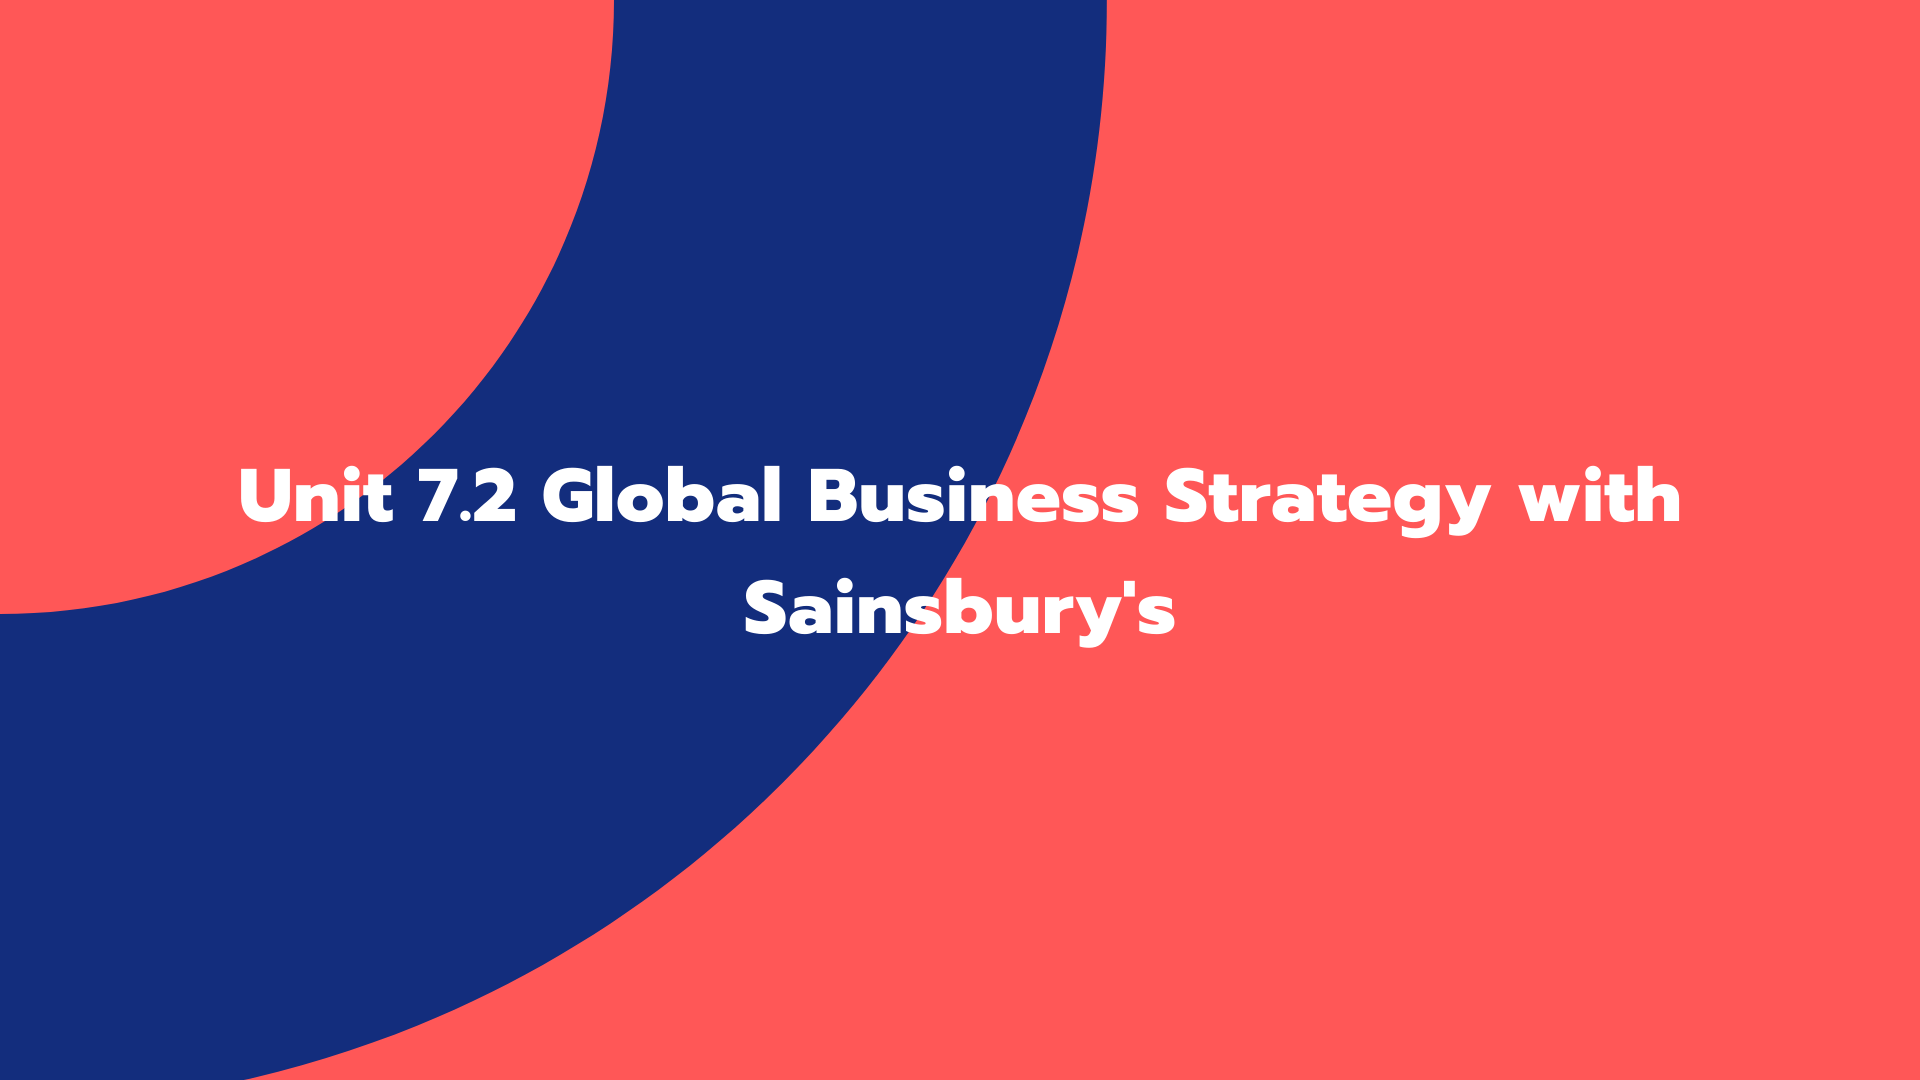 Unit 7.2 Global Business Strategy with Sainsbury's